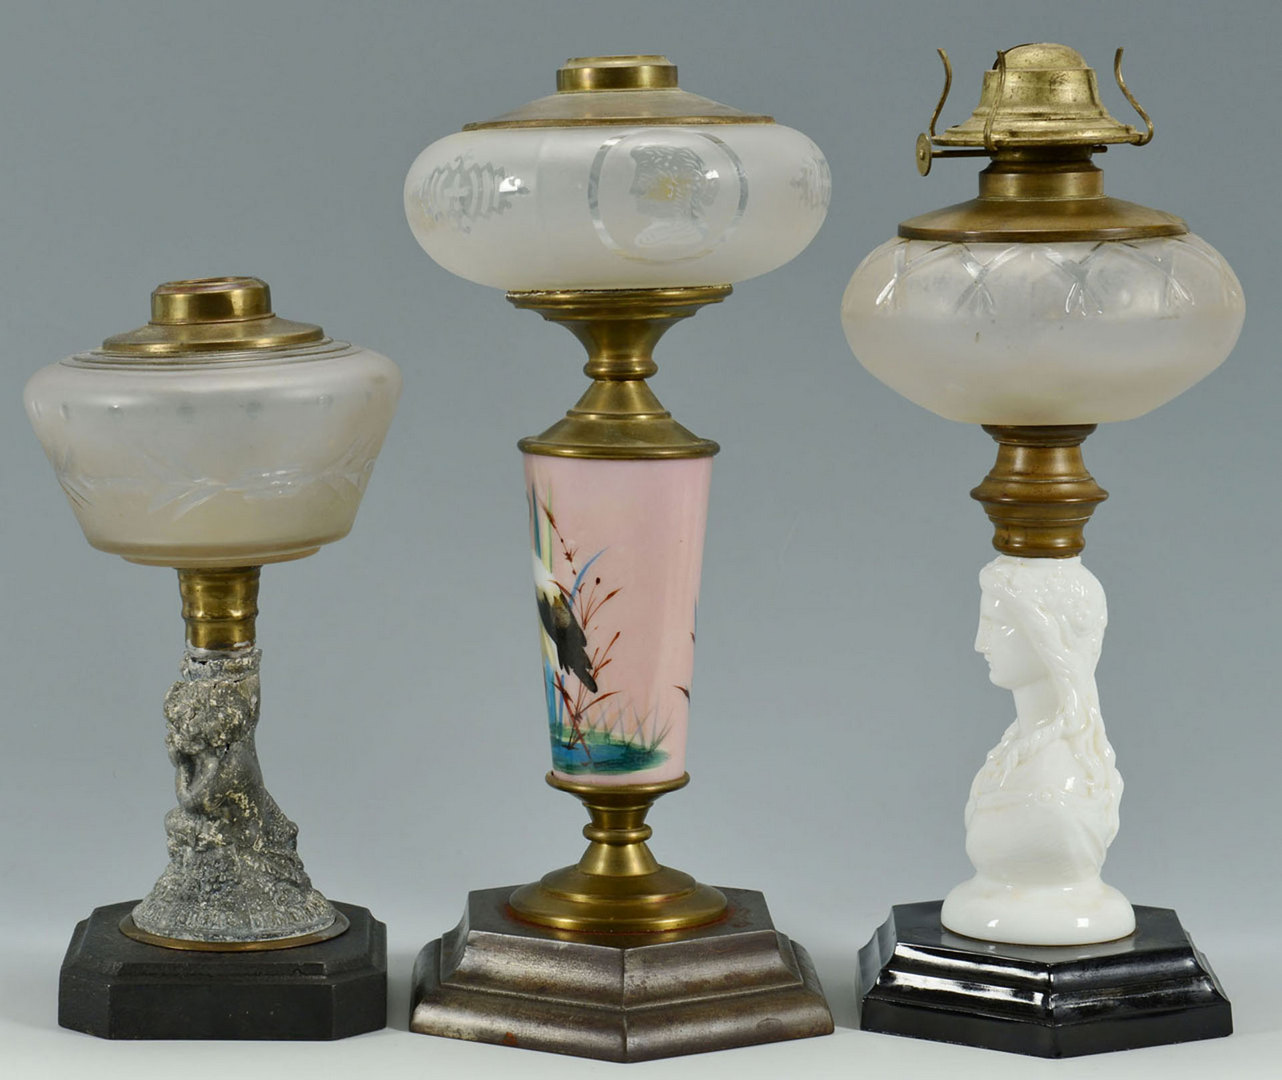 Lot 668: 3 Classical Oil Lamps